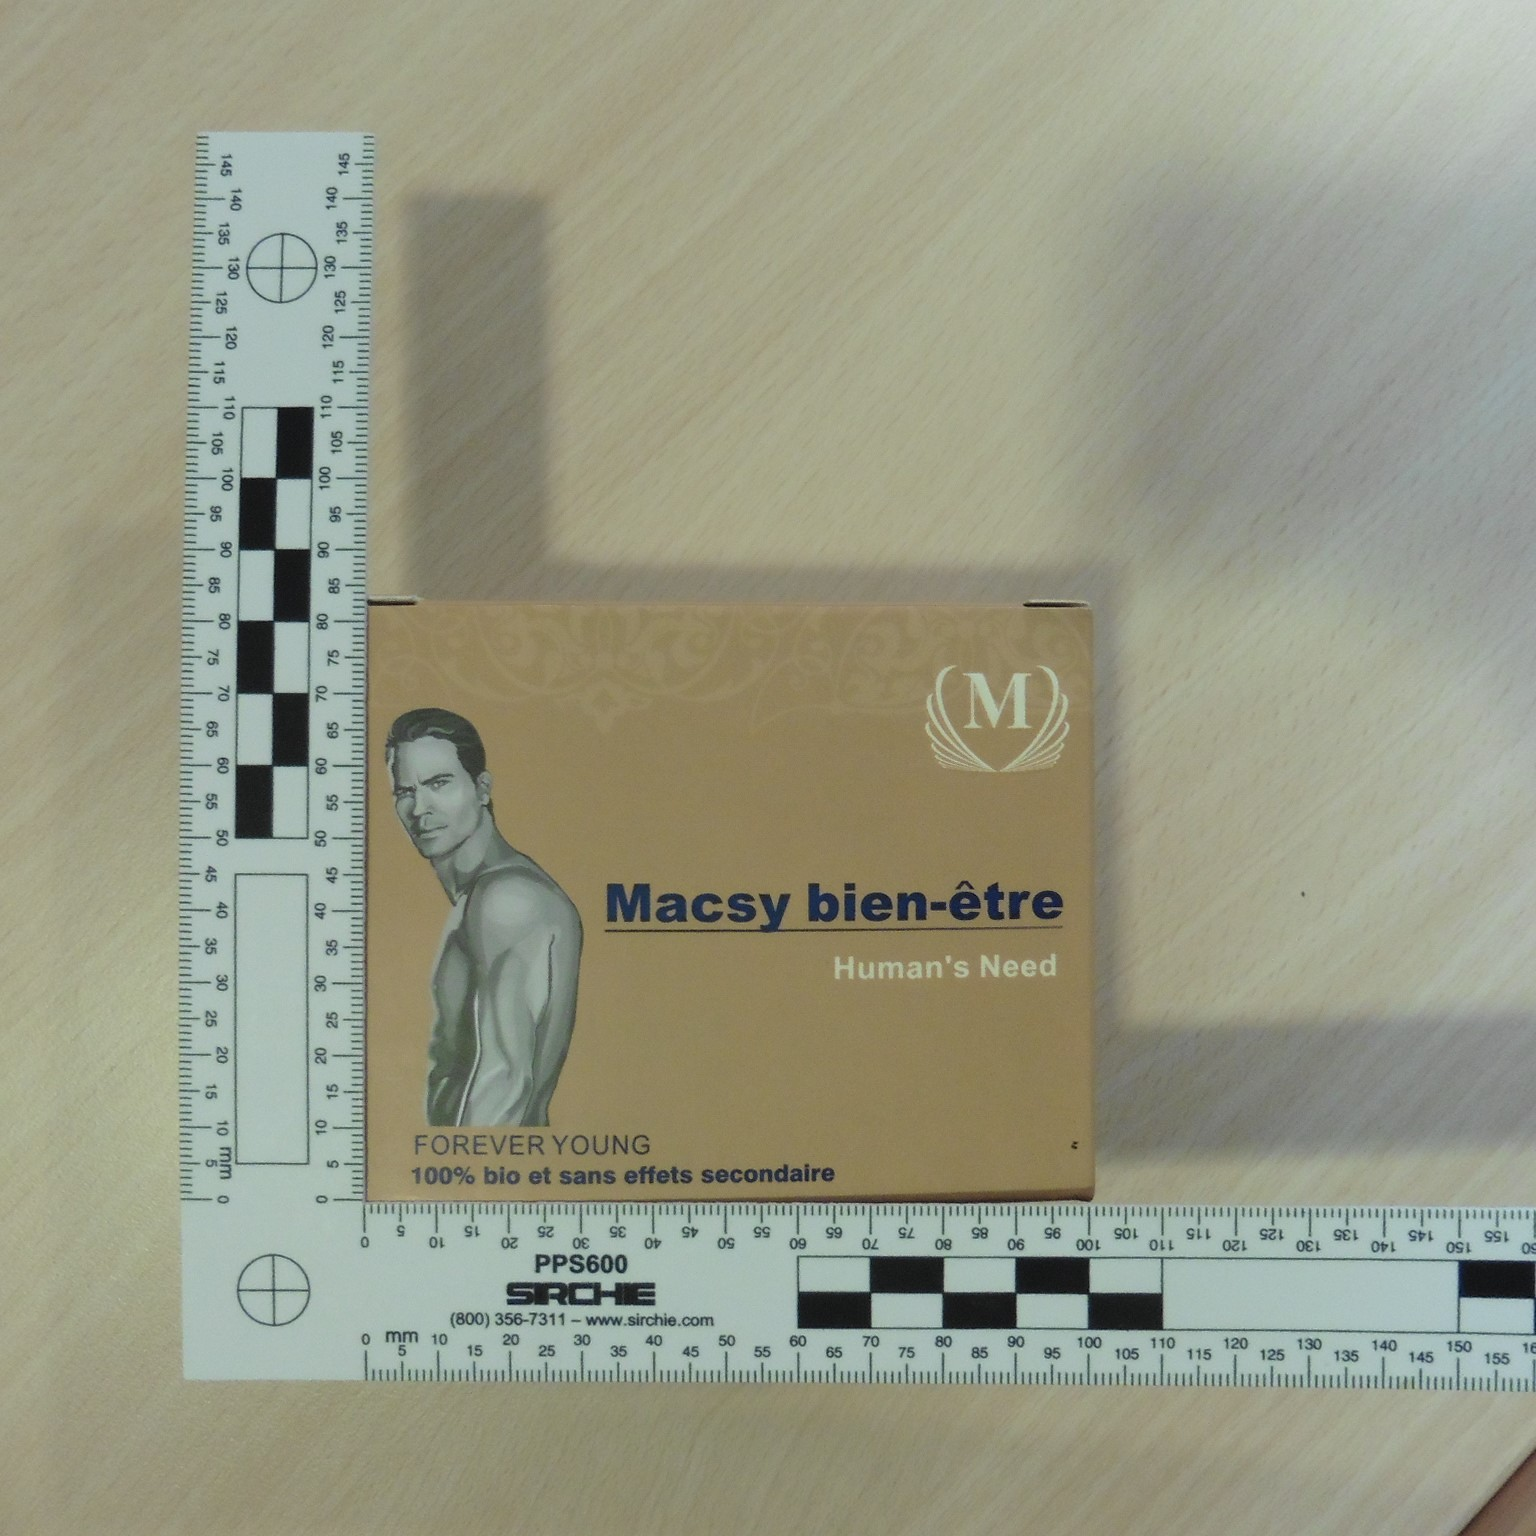 Image of the illigal product: Macsy Bien-être